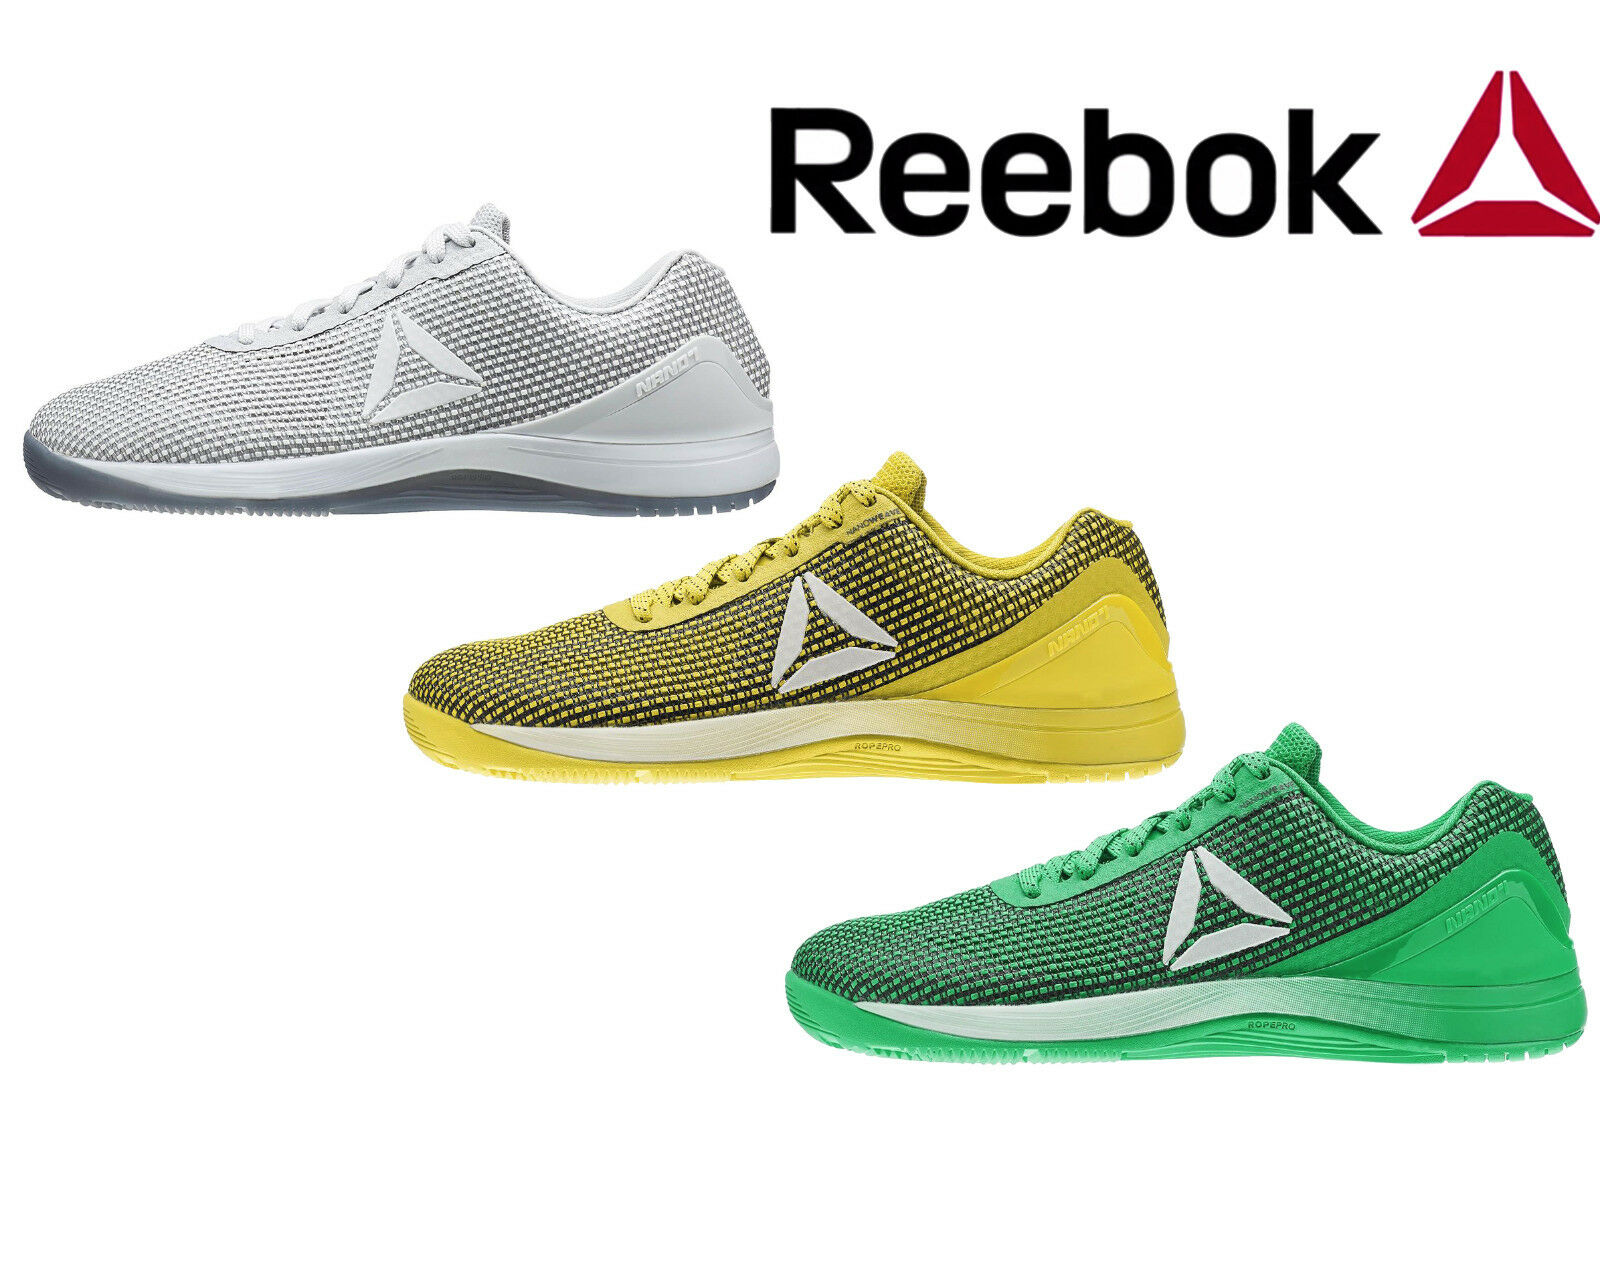 Reebok Crossfit Nano 7 Mens Training schuhe Reebok Nano 7 Turnschuhe NEW